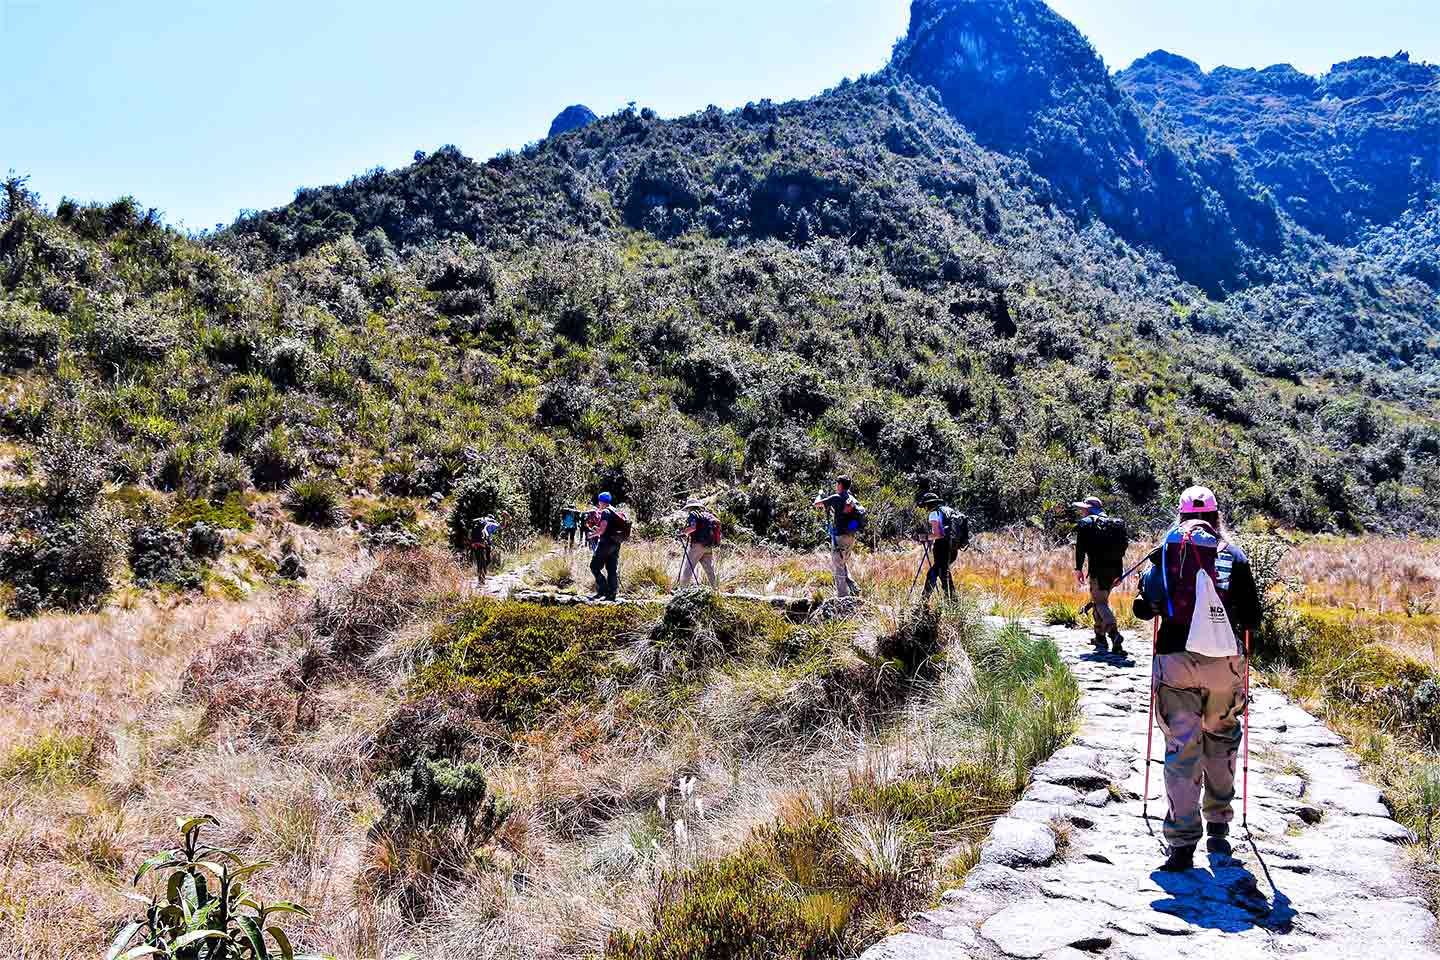 Hiking the Inca Trail 4D/3N